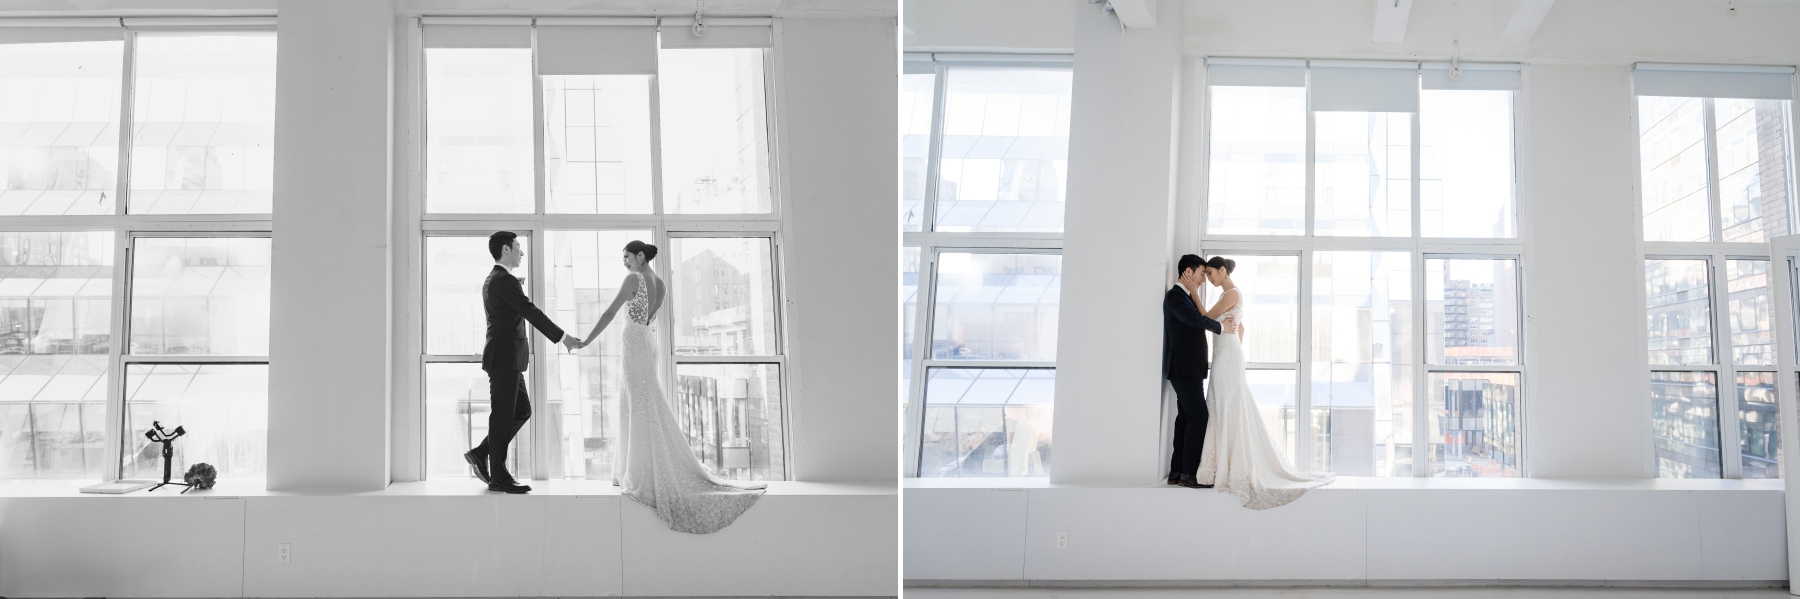 images from my styled shoot, partnering with the following vendors: Jenny Yoo NYC Bridal, AKA Cedric Salon, Mariana Collignon (Makeup), as well as Location05 for our venue, and Gary Feng Videography. Photos were taken first at Cedric's salon, then at Bryant Park, and then finished at Location05. We were able to take beautiful natural, modern wedding style photography with our two models Meghan and Tobee. It's important that your Manhattan, New York, wedding photographer is always pushing himself to consistently grow my skillset and network, to provide the best service for my clients.